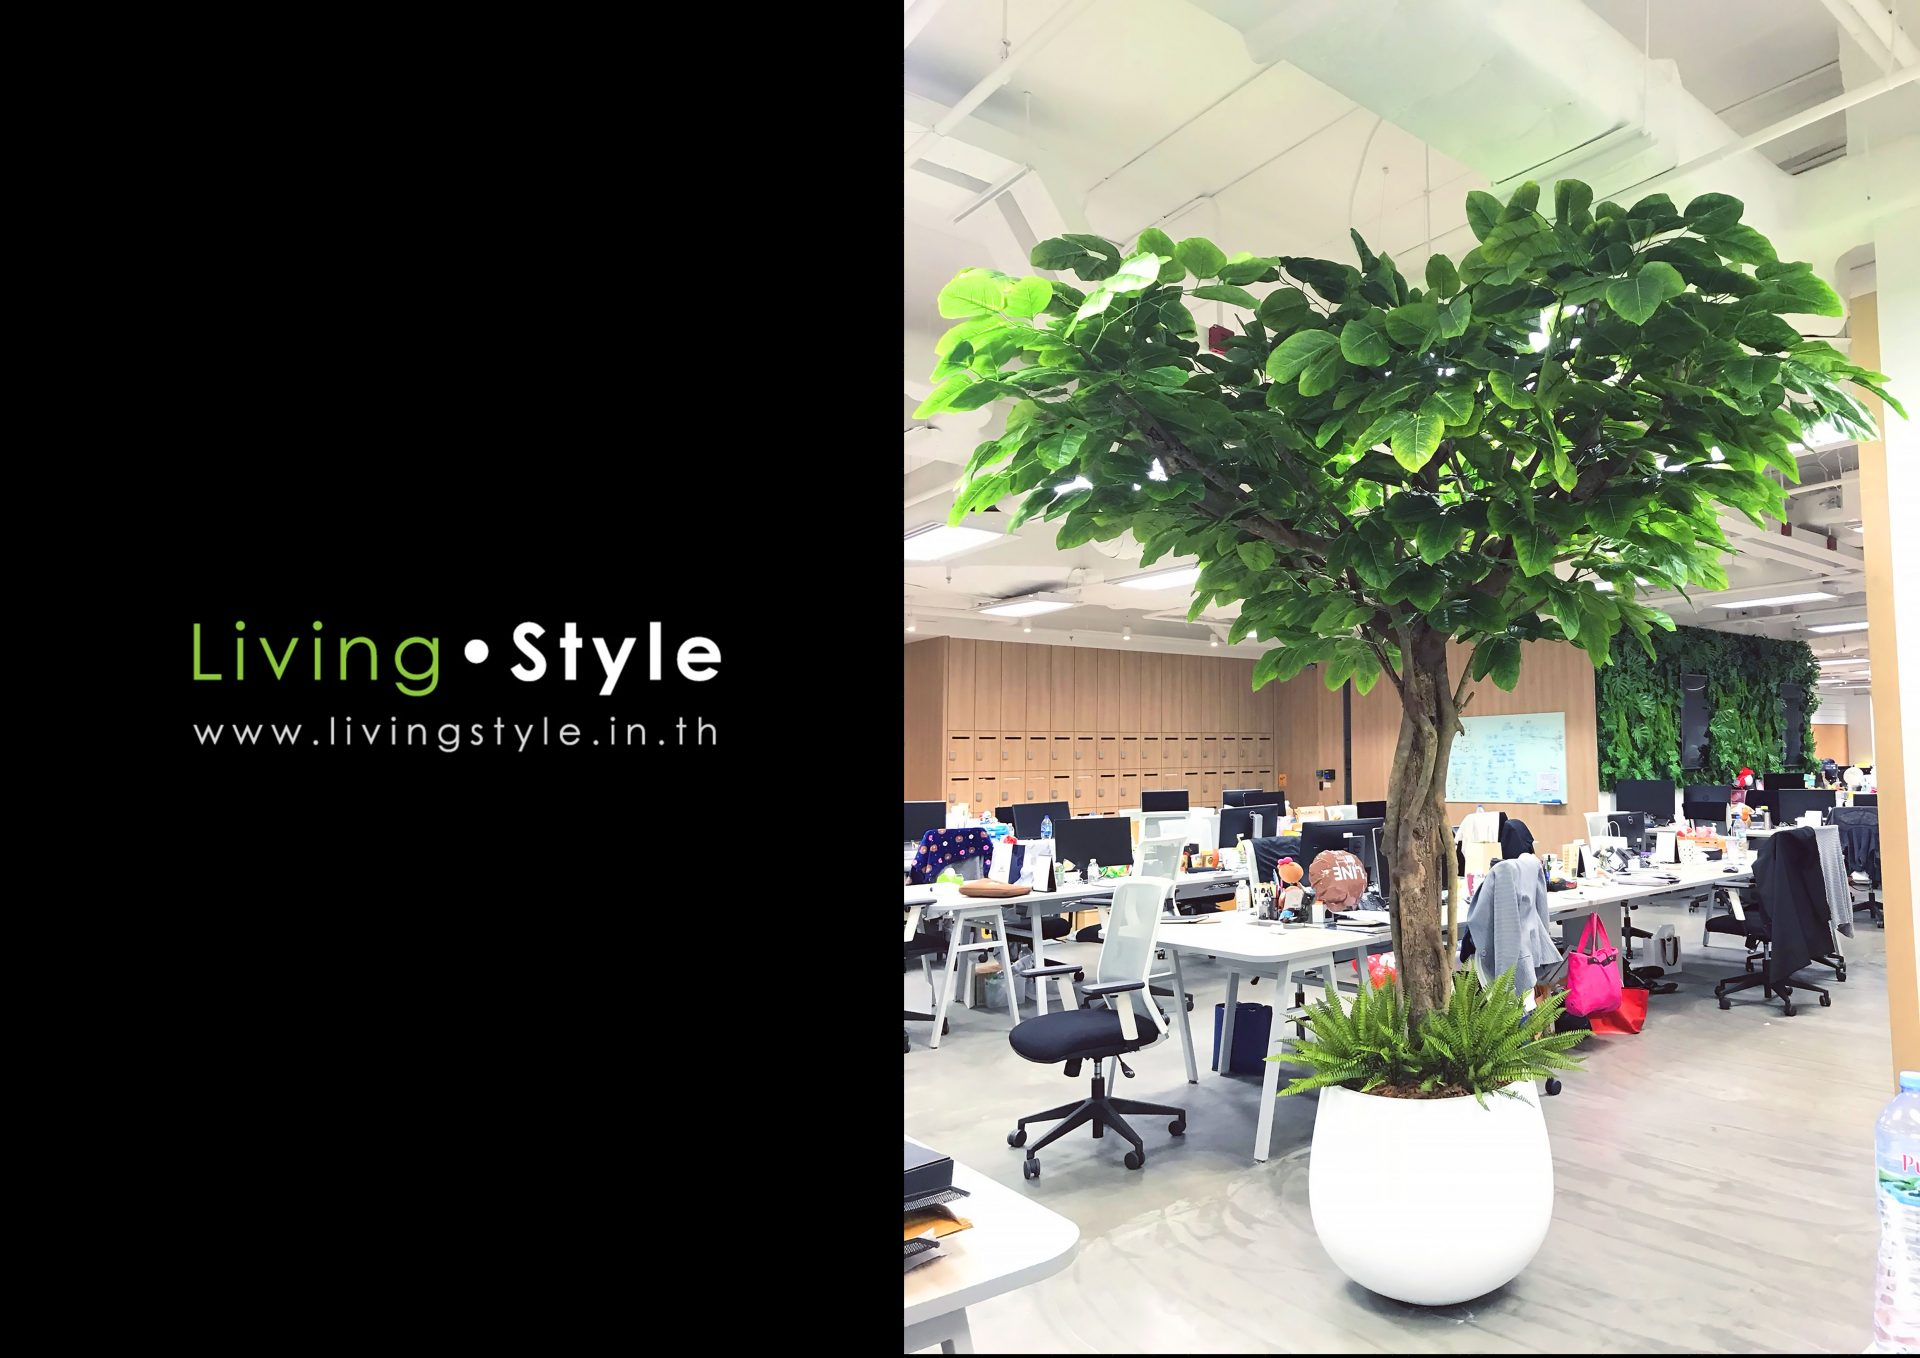 Livingstyle 011-1 catalog